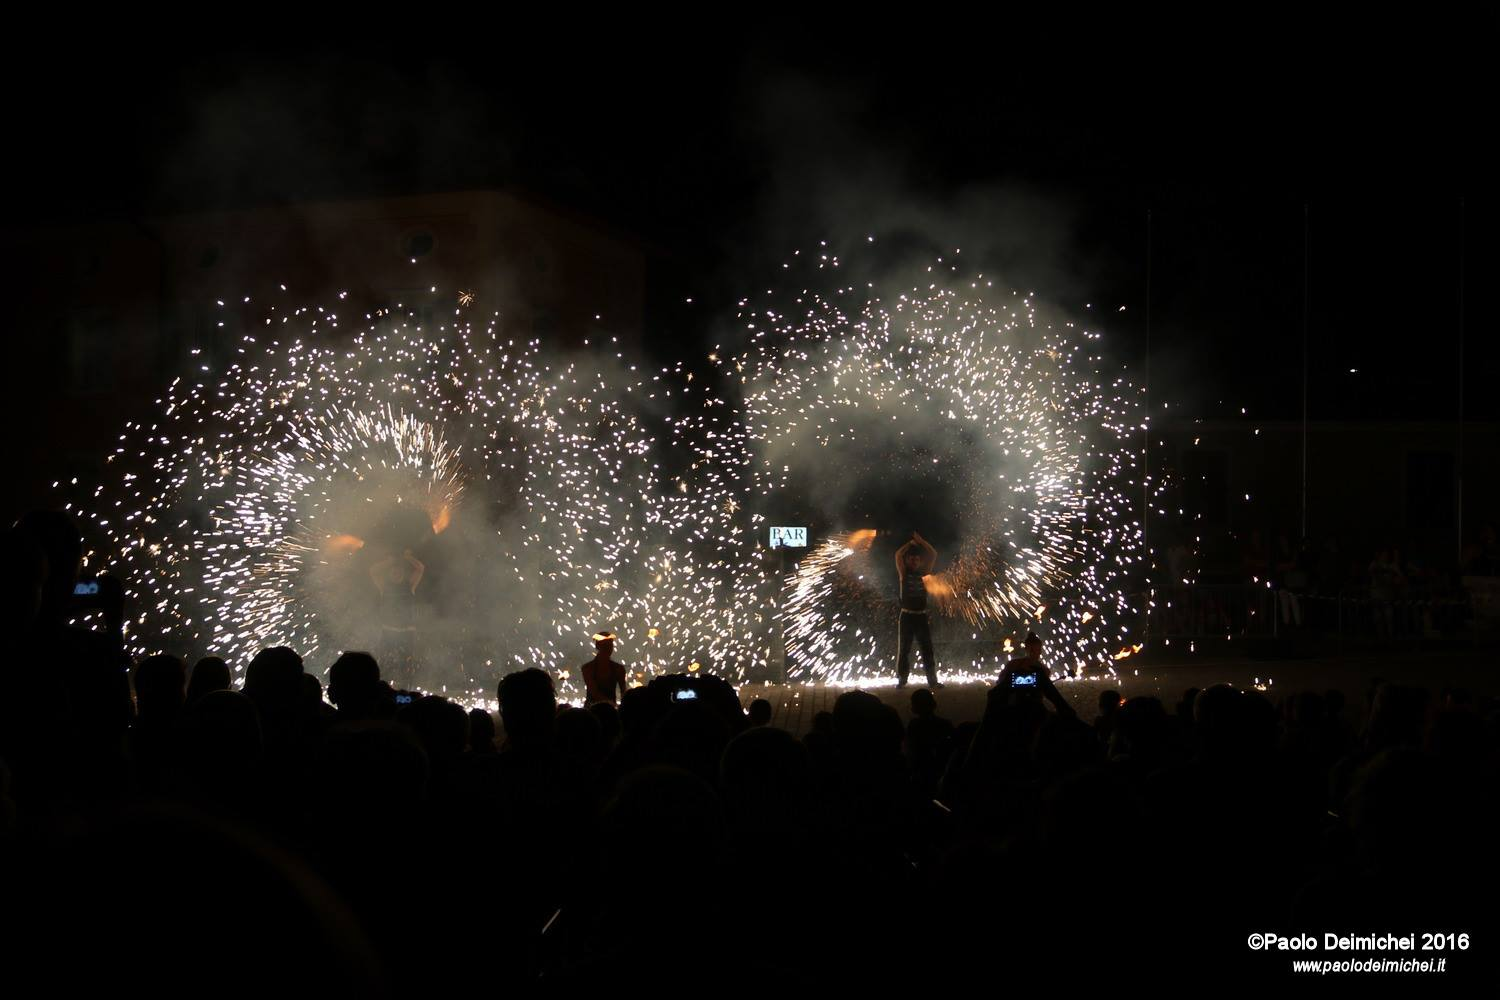 fire-show-with-fireworks.jpg